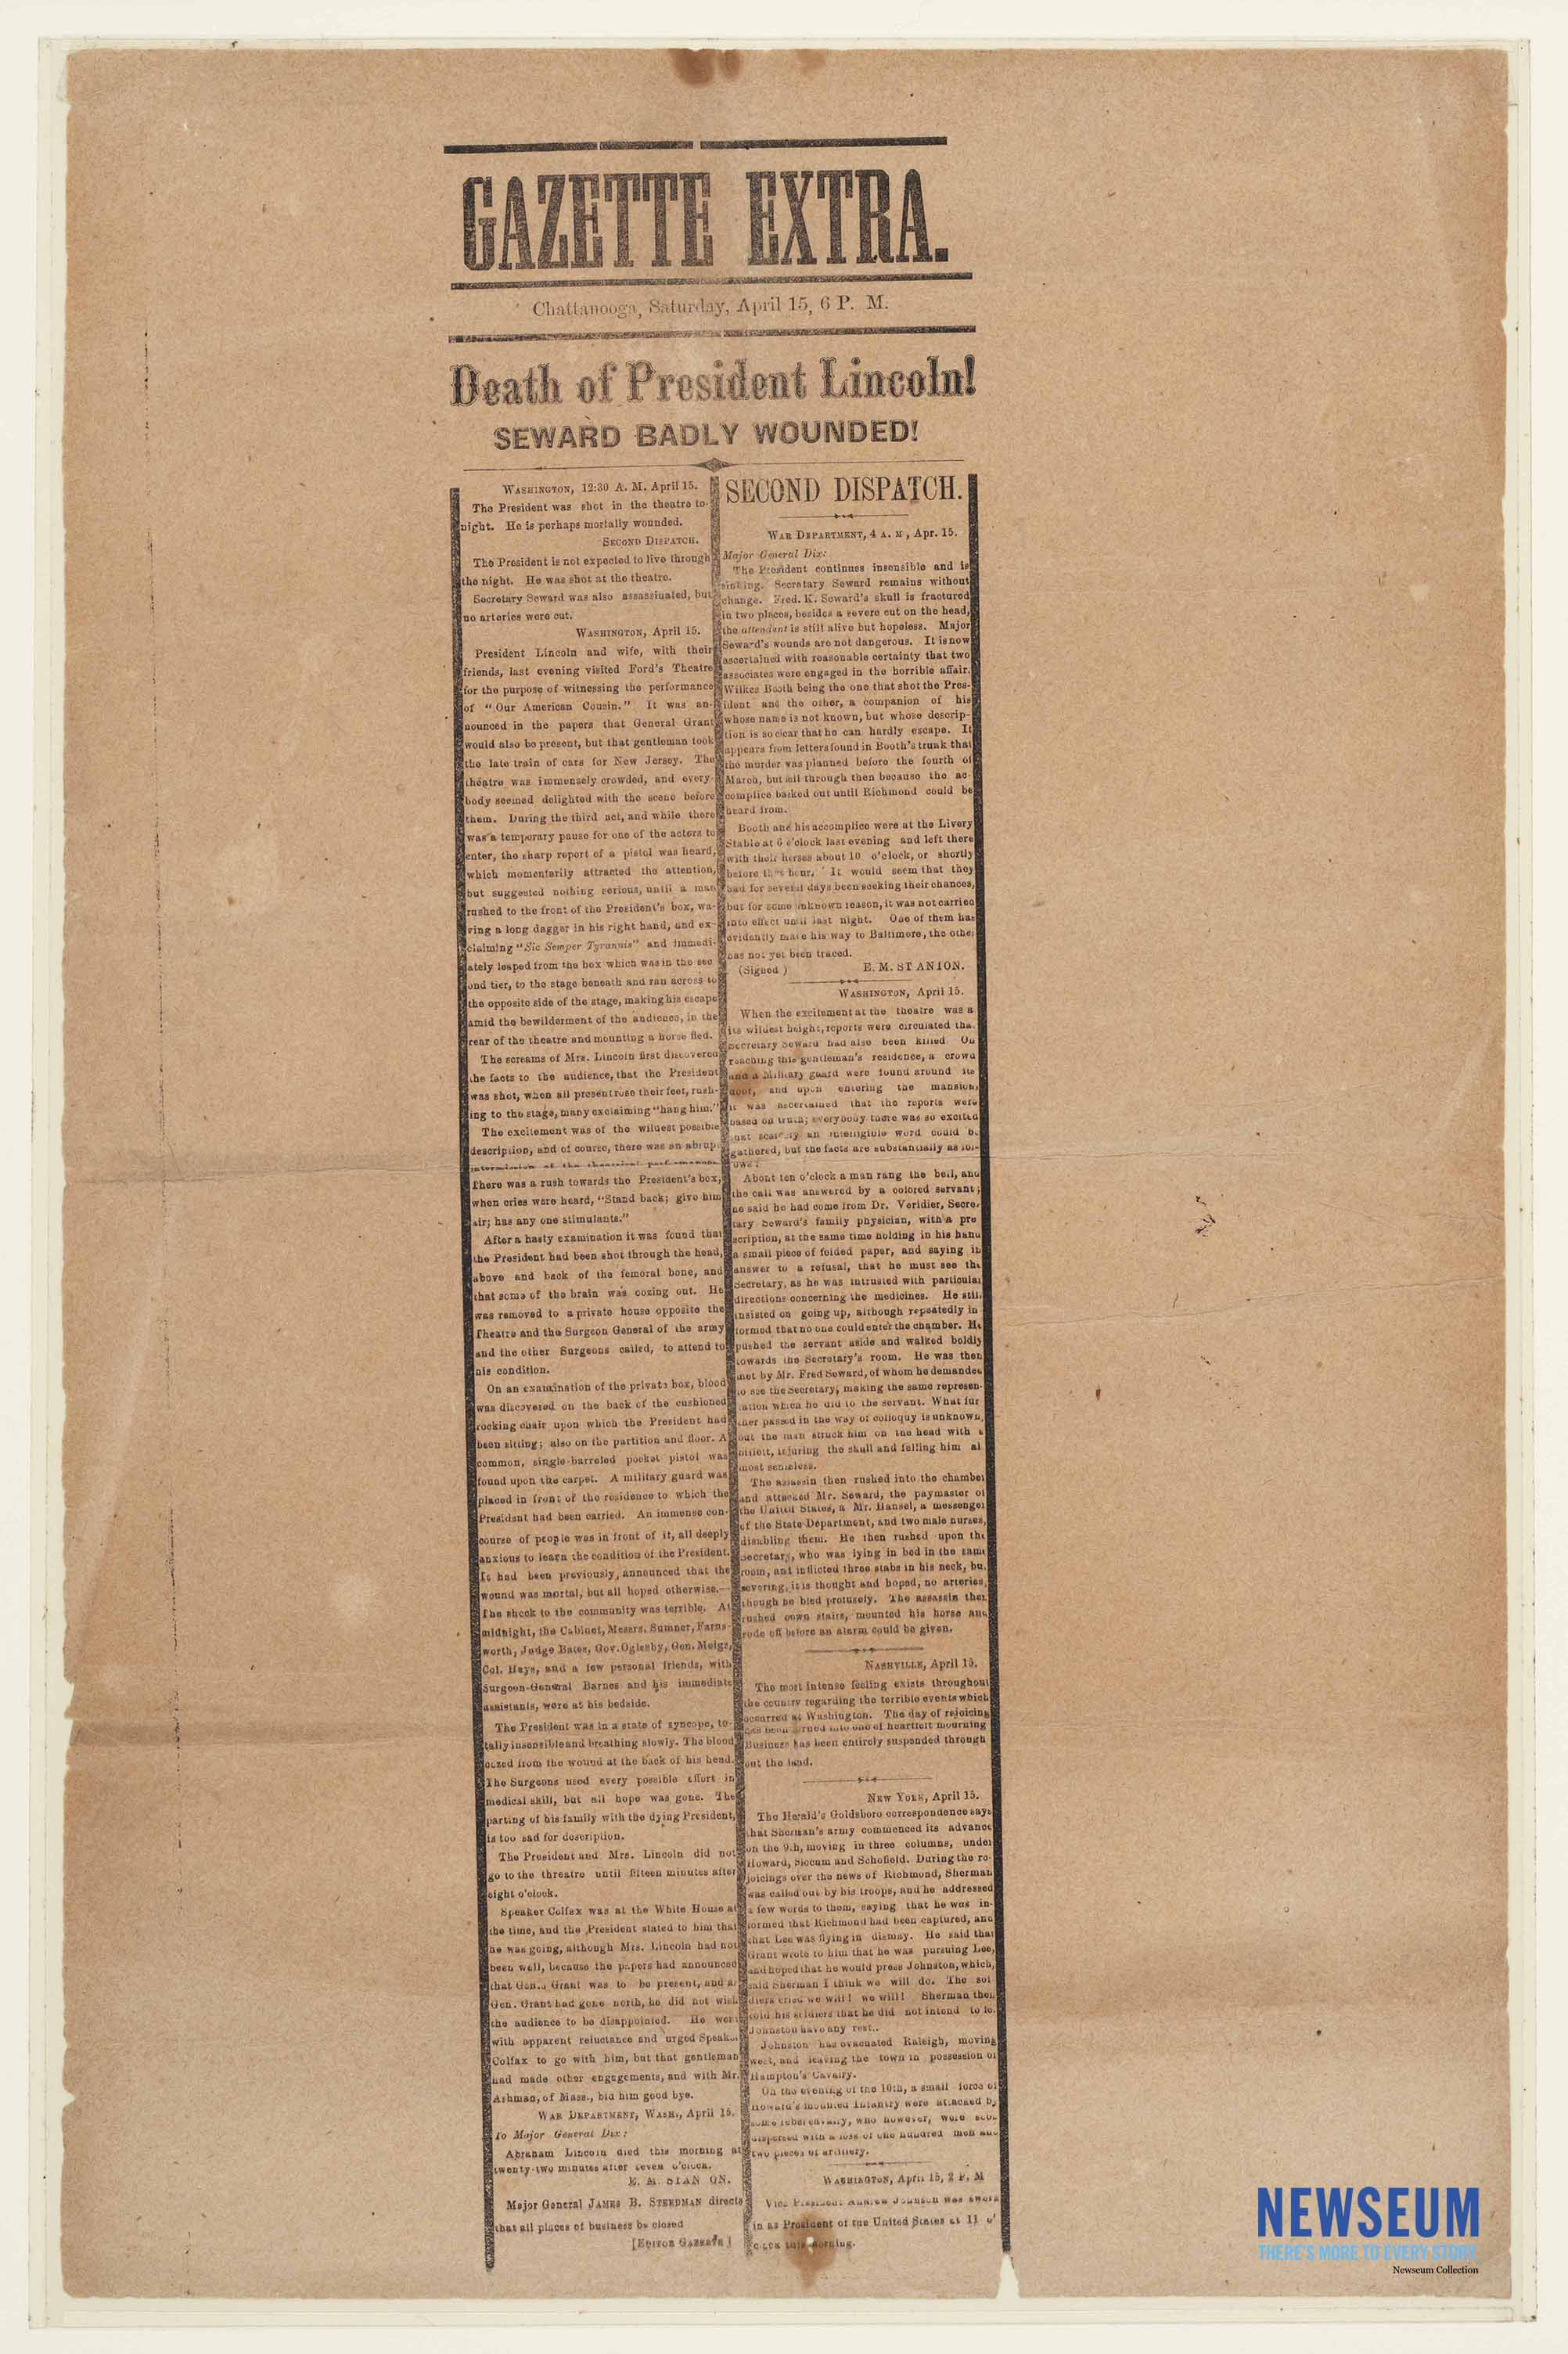 [Chattanooga Daily] Gazette Extra, April 15, [1865]